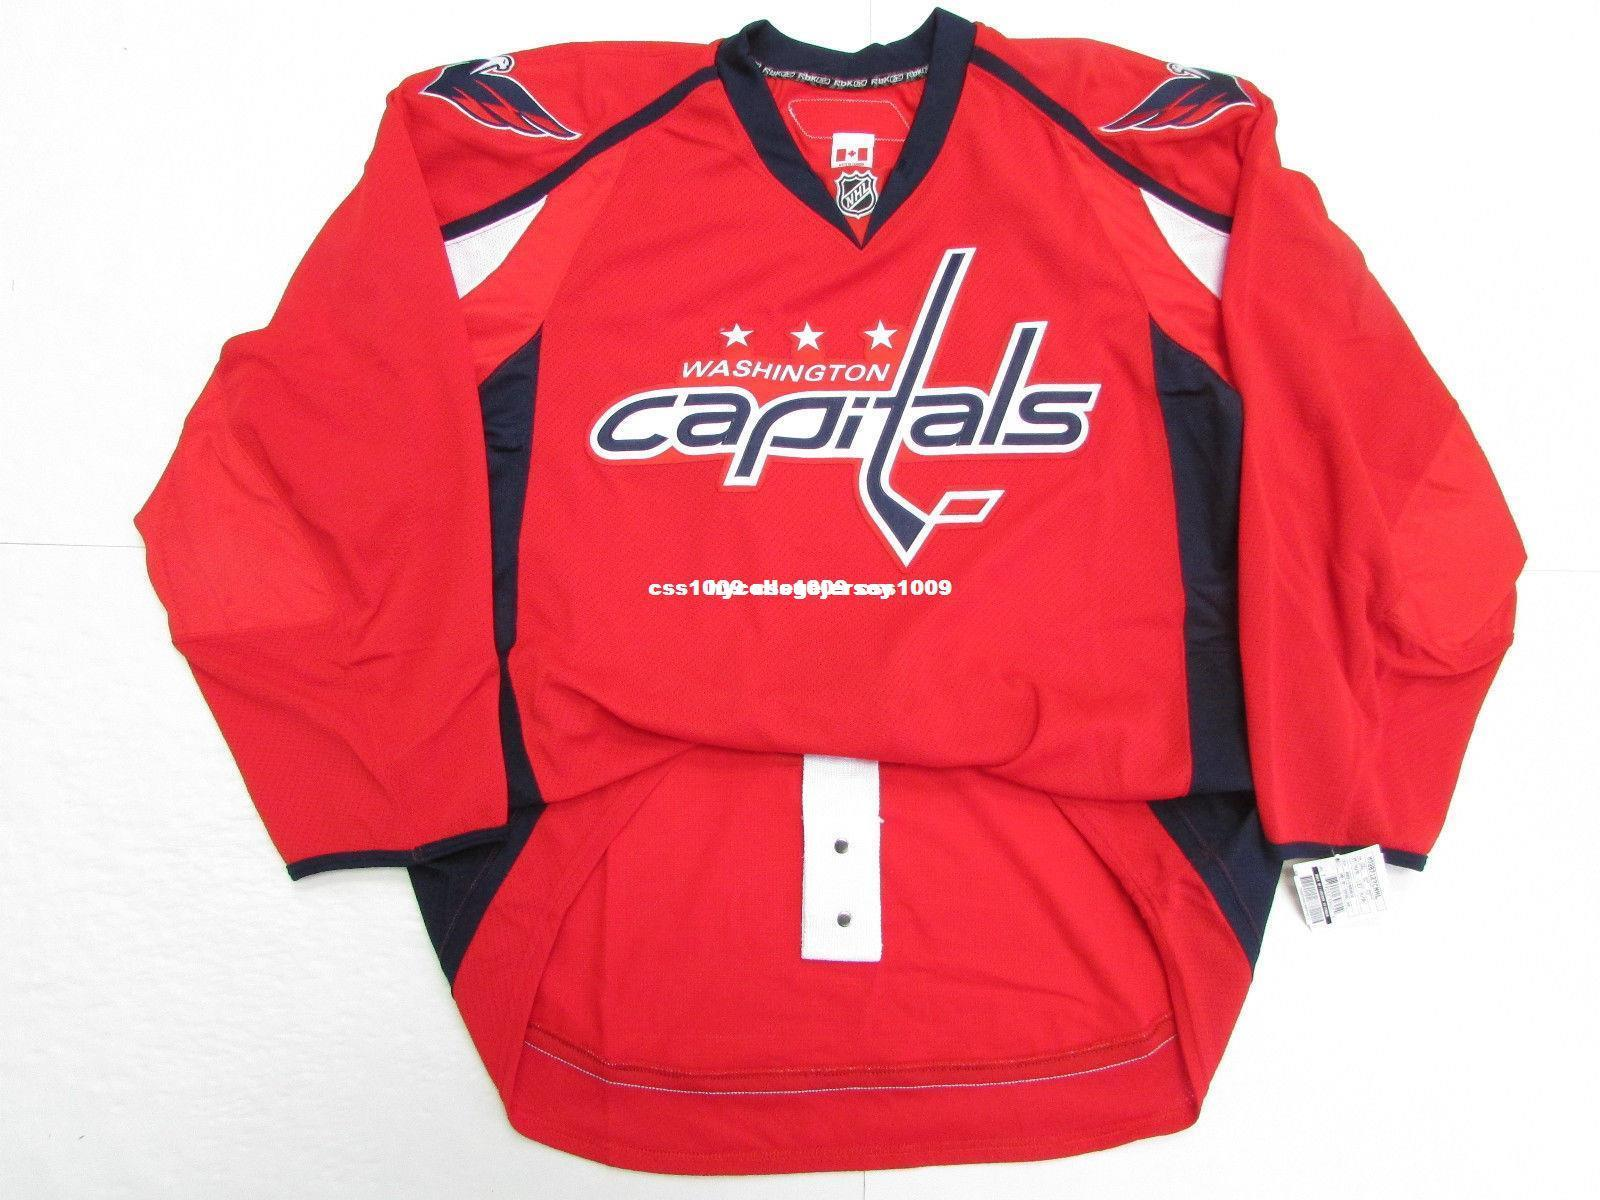 911cb0774cb 2019 Cheap Custom WASHINGTON CAPITALS HOME TEAM ISSUE EDGE 2.0 7287 JERSEY  Stitch Add Any Number Any Name Mens Hockey Jersey XS 6XL From  Hycollegejersey, ...